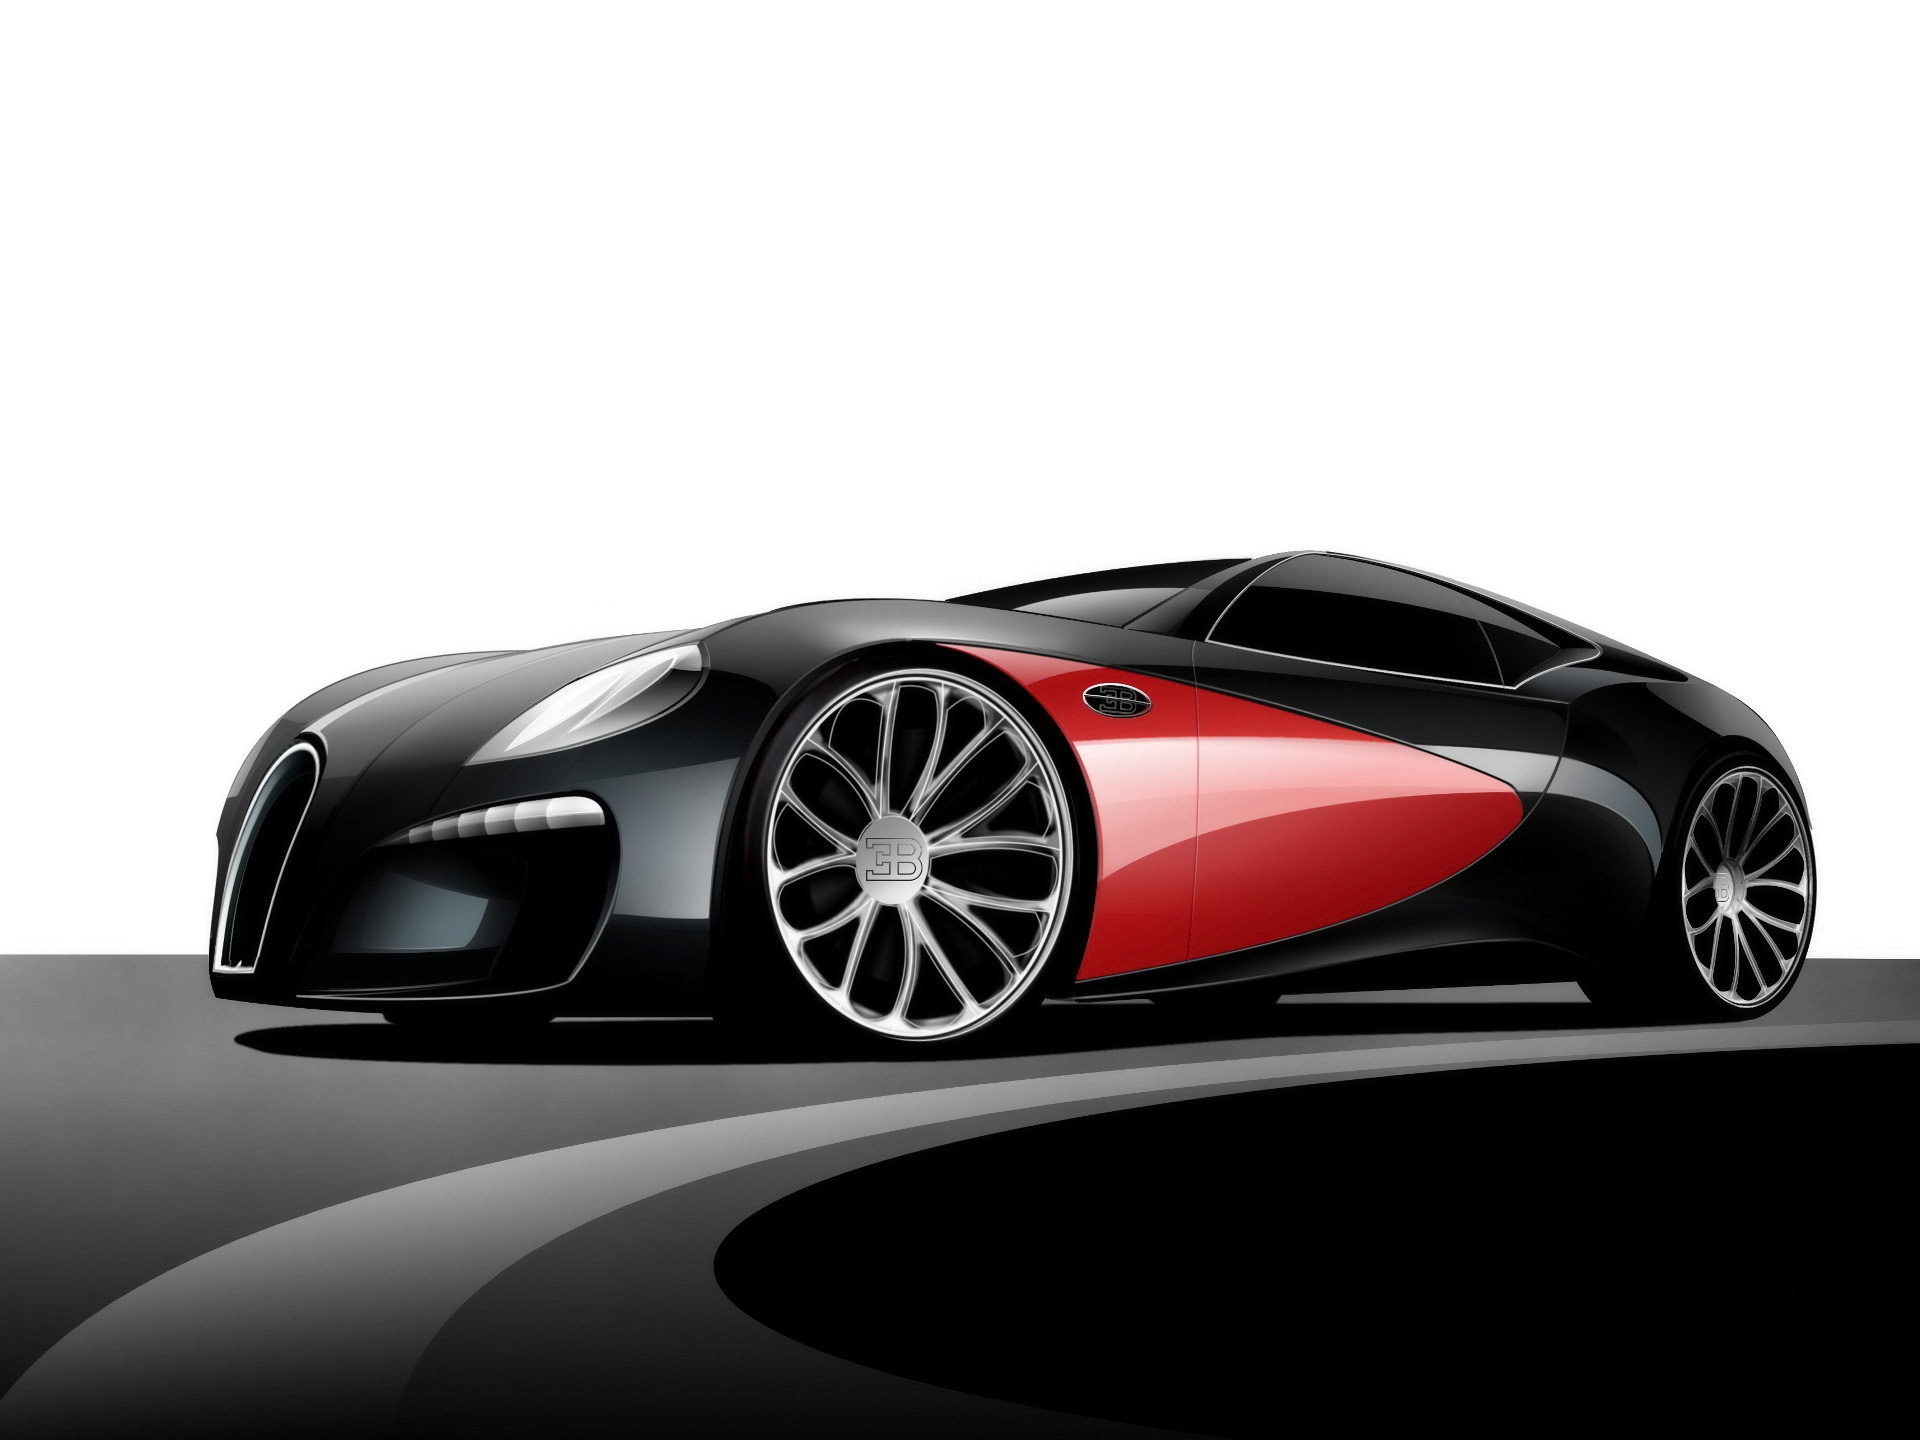 Download Cars Desktop Backgrounds 195   Fullsize Wallpaper 1920x1440